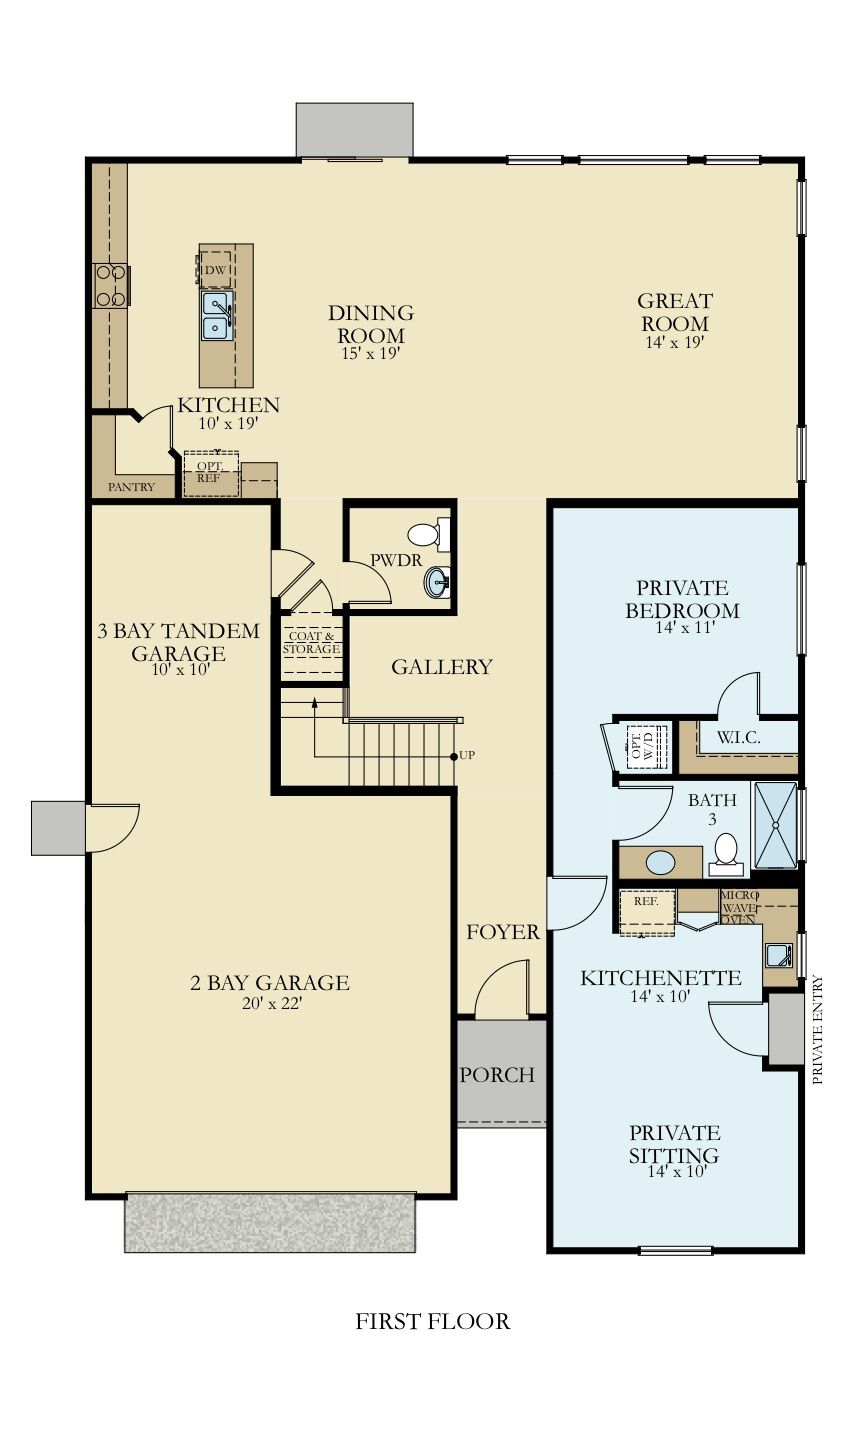 Two Story Home With Mother In Law Suite This Floorplan Includes 3 Bedrooms 2 Bathrooms And Sitting Room Area I New House Plans New Homes For Sale House Plans